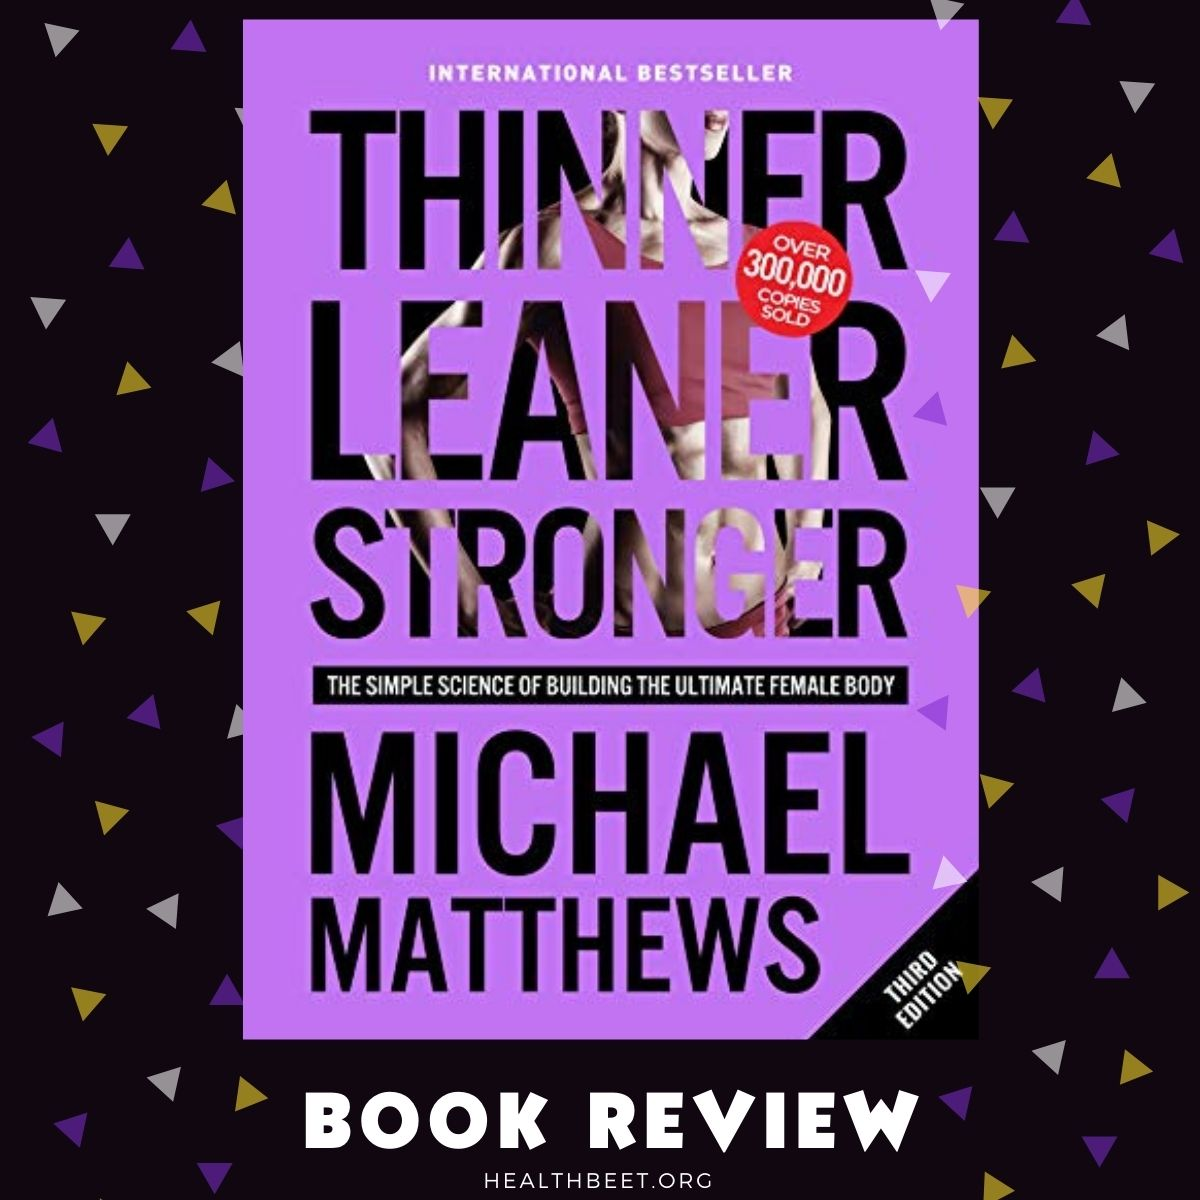 Book review of Thinner Leader Stronger by Mike Matthews sq